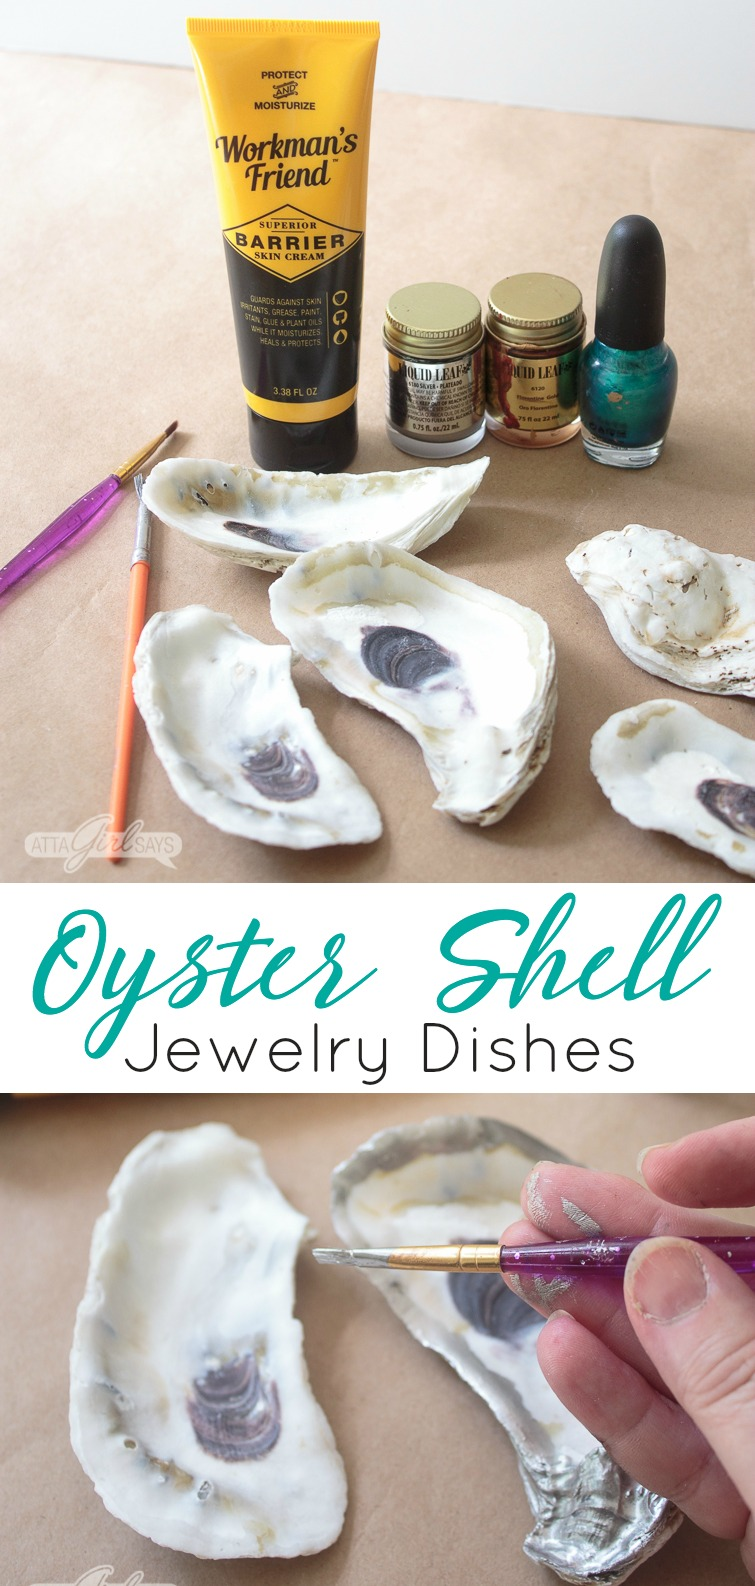 collage photo showing supplies needed to make this oyster shell craft jewelry dishes: liquid leaf in gold and silver, Workman's Friend Barrier Skin Cream, oyster shells, fingernail polish and paintbrushes